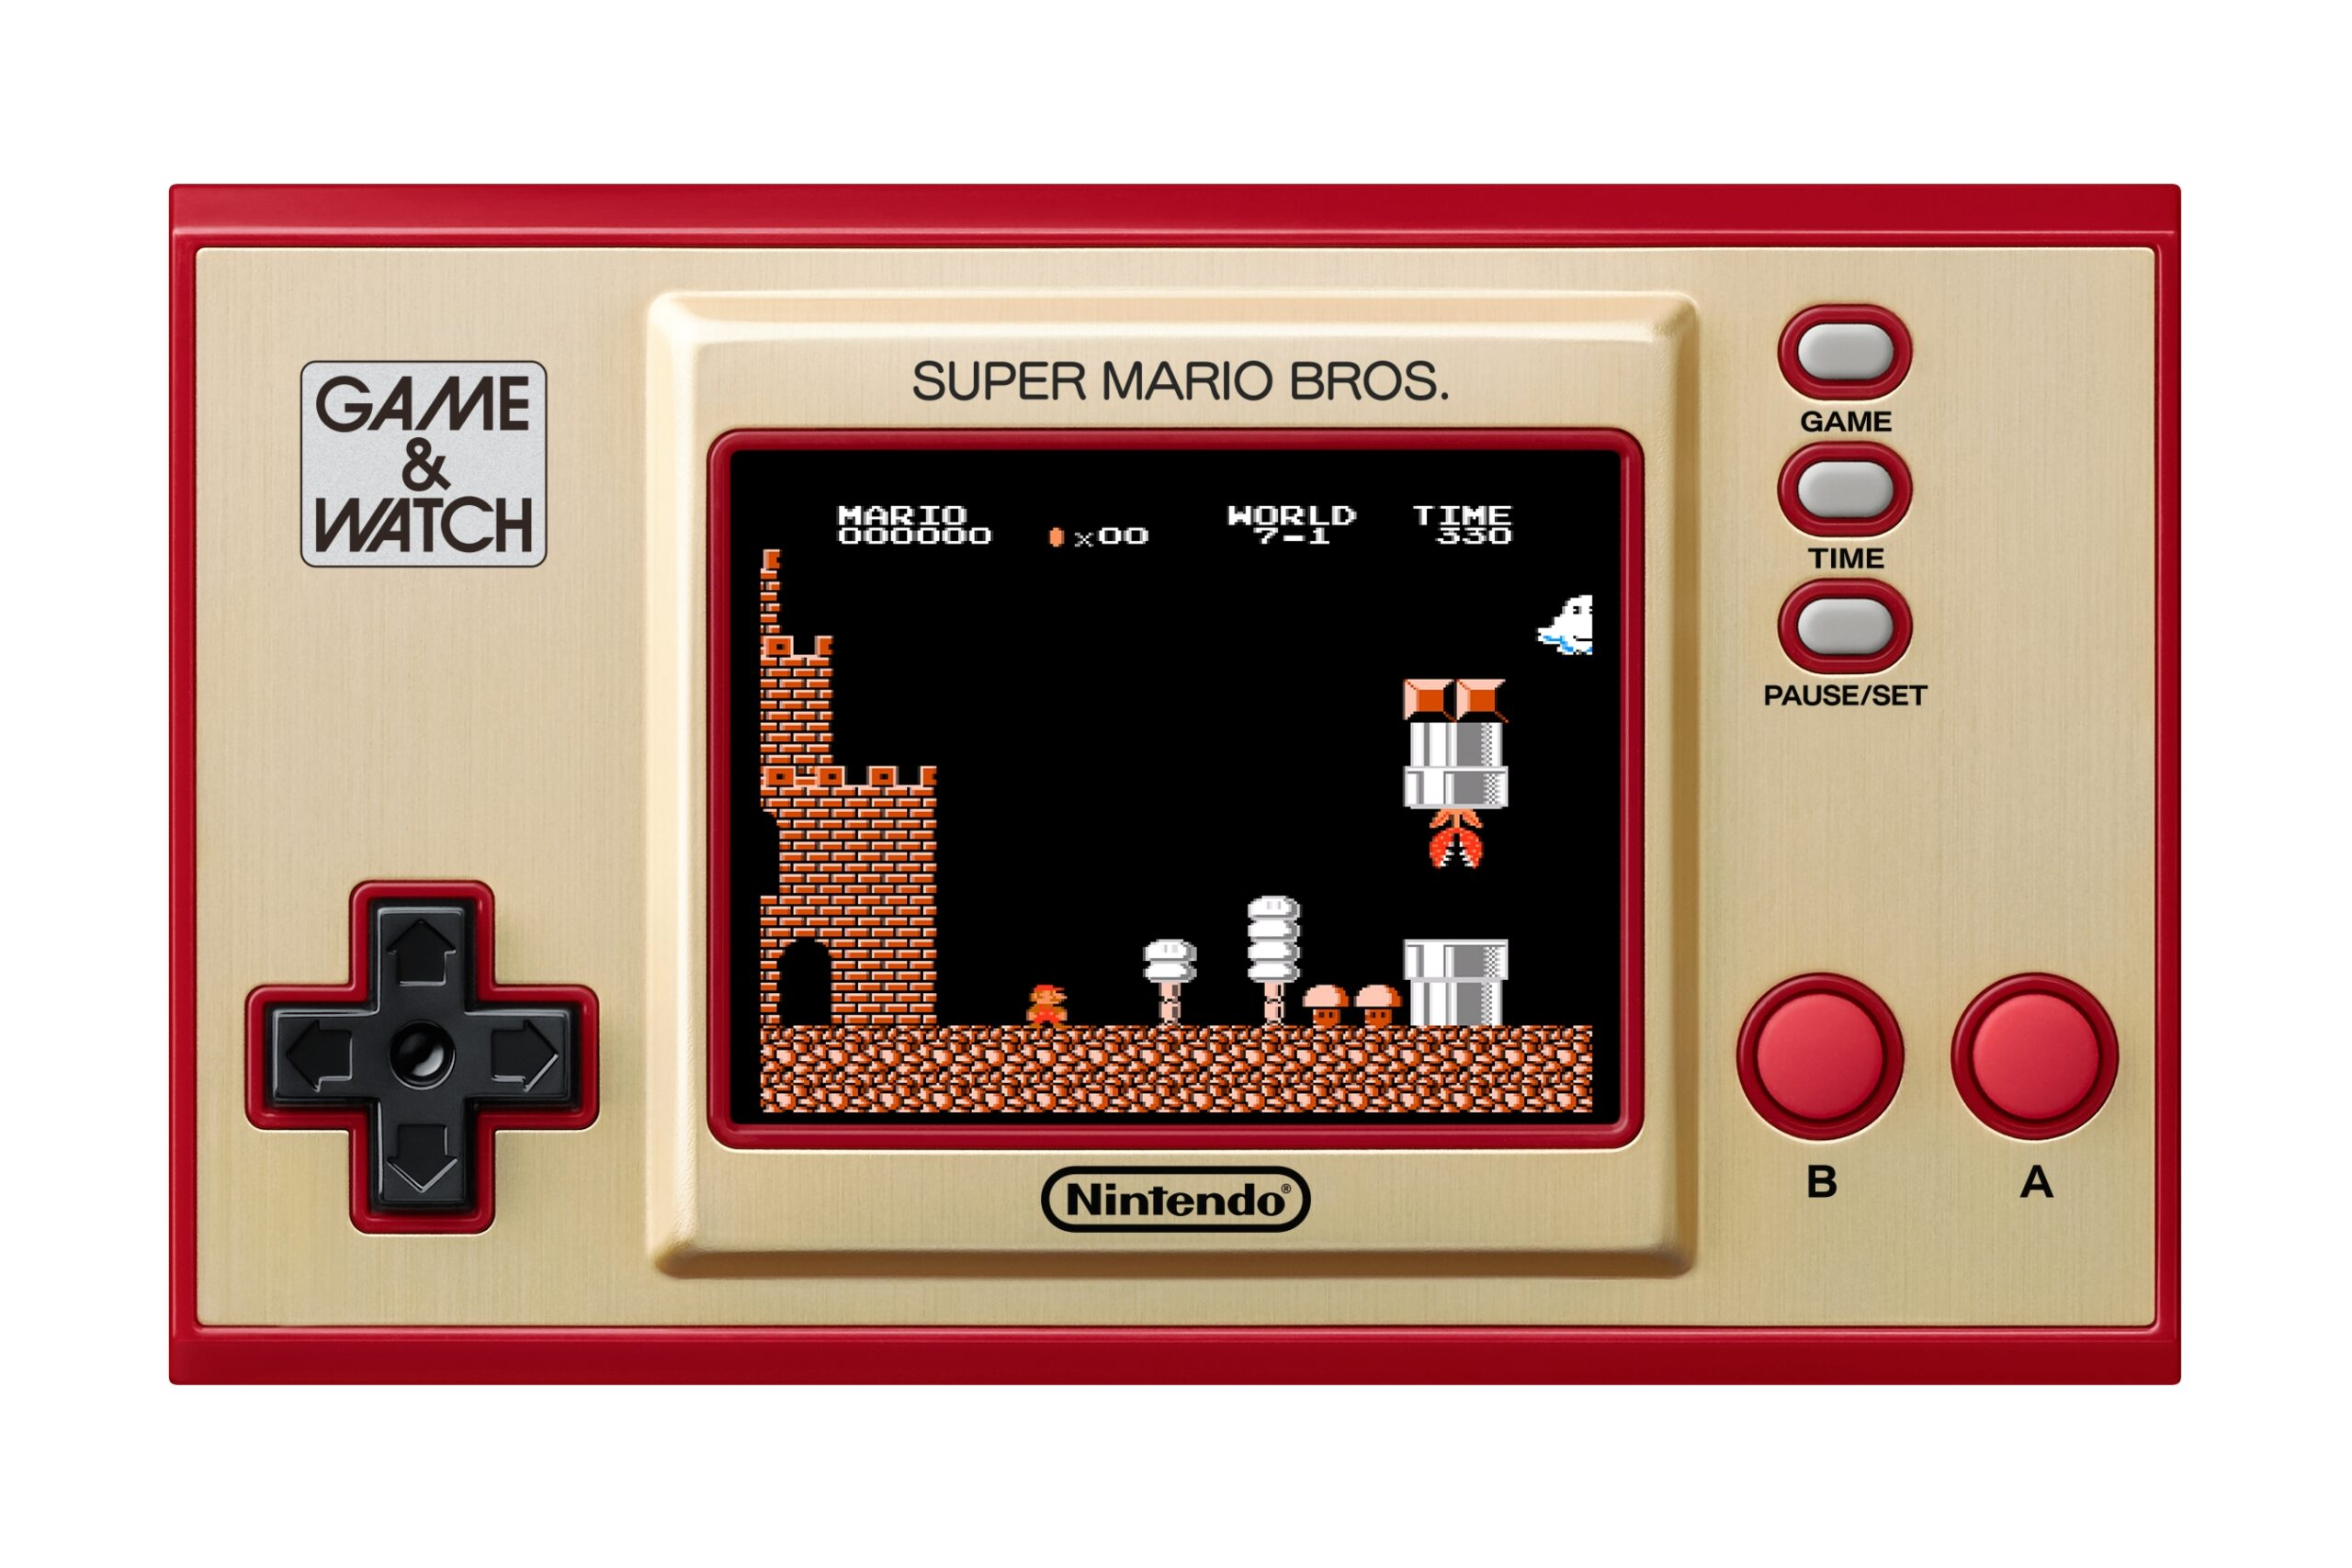 Game-and-Watch-Super-Mario-Bros_2020_09-03-20_016